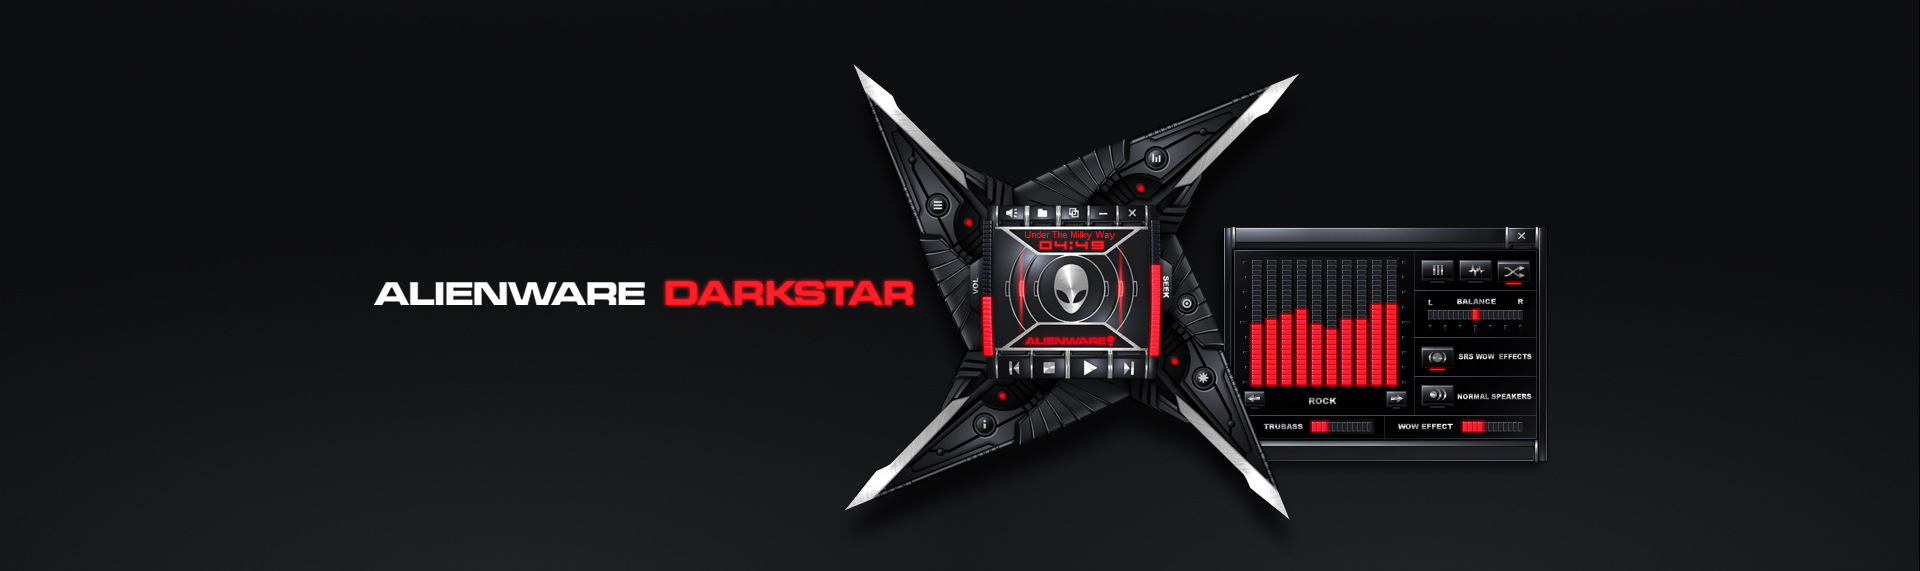 Alienware Darkstar  Client: Alienware Corporation + Microsoft  From the deepest, darkest reaches of space it came - prepared to unleash its dark power on unsuspecting desktops across the galaxy. Alienware Darkstar features breathtaking design elements such as audio-enhanced startup and runtime animations, function-responsive LED arrays and highly tactile control surfaces. All of these features combine to create a stunning Windows Media Player skin brilliantly captured in black and red and infused with traces of Alienware's distinctive style.